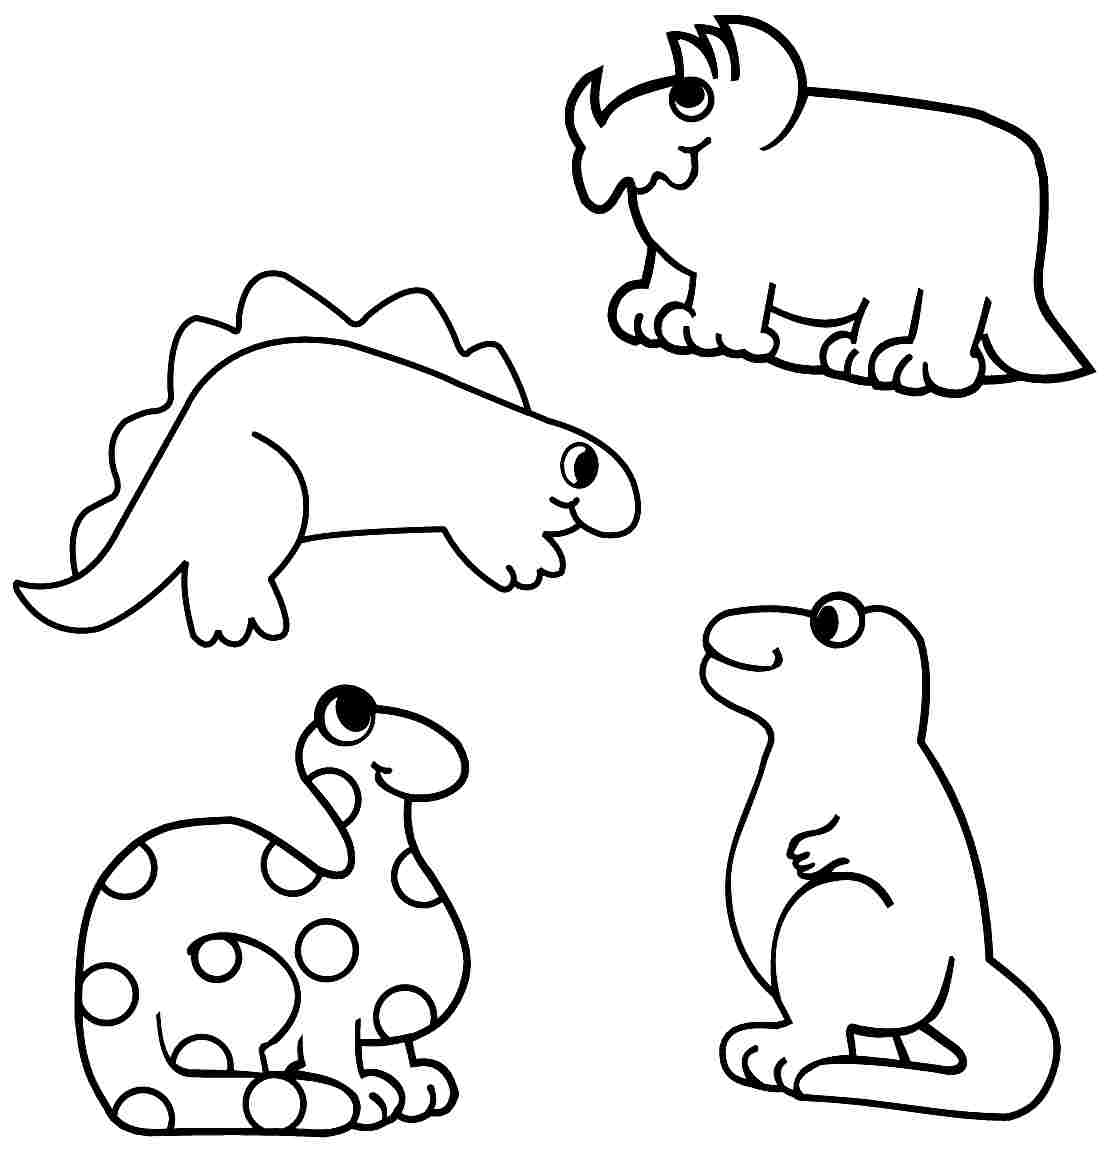 Dinosaur Coloring Pages For Toddlers At Getcolorings